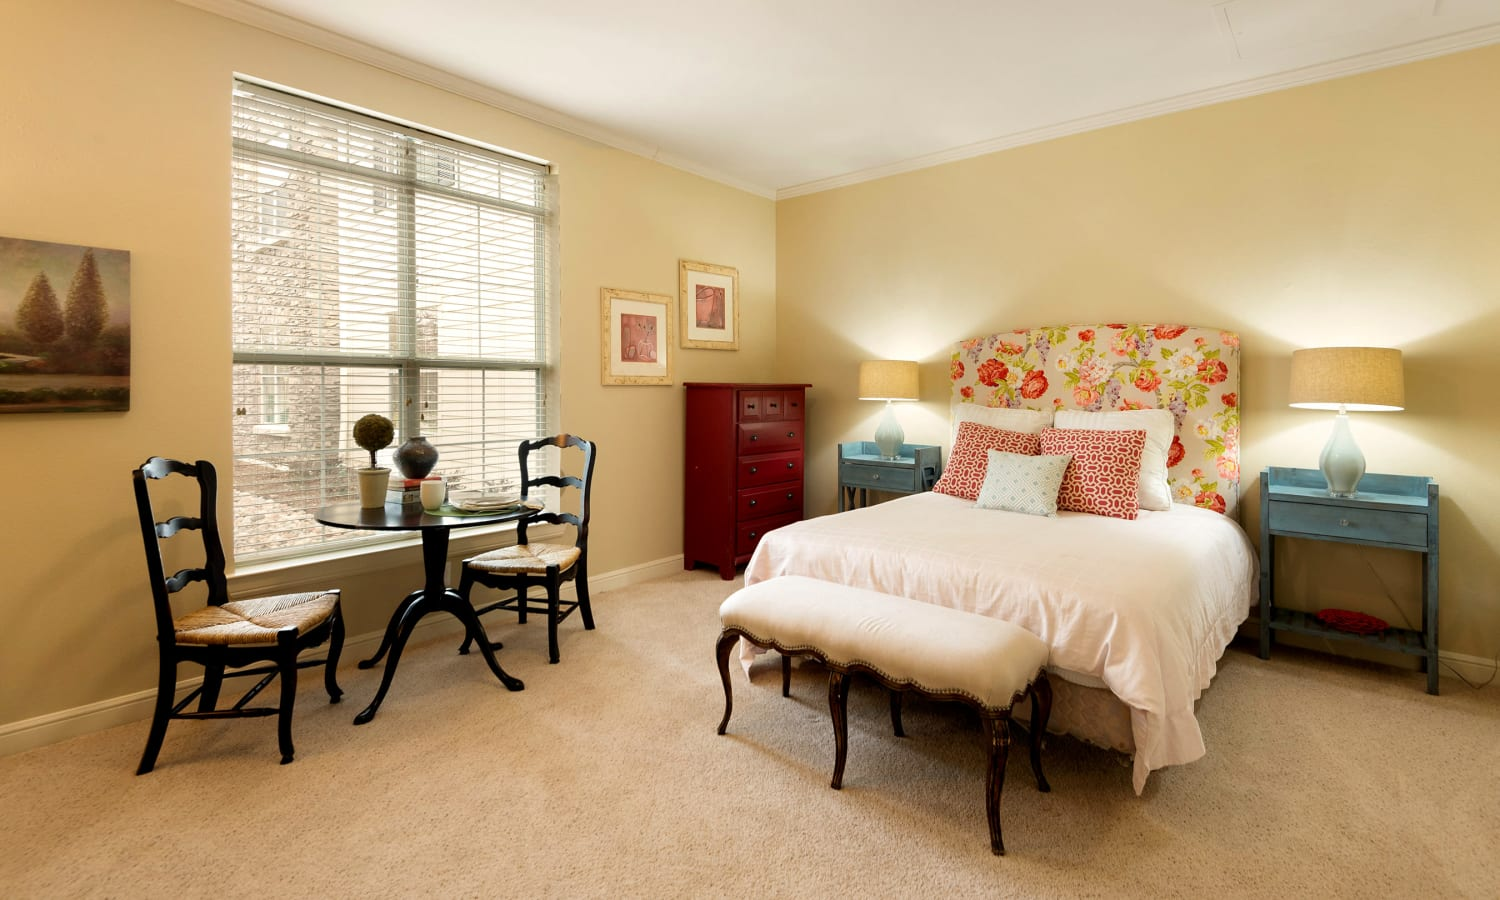 Private living space at Prestonwood Court in Plano, Texas